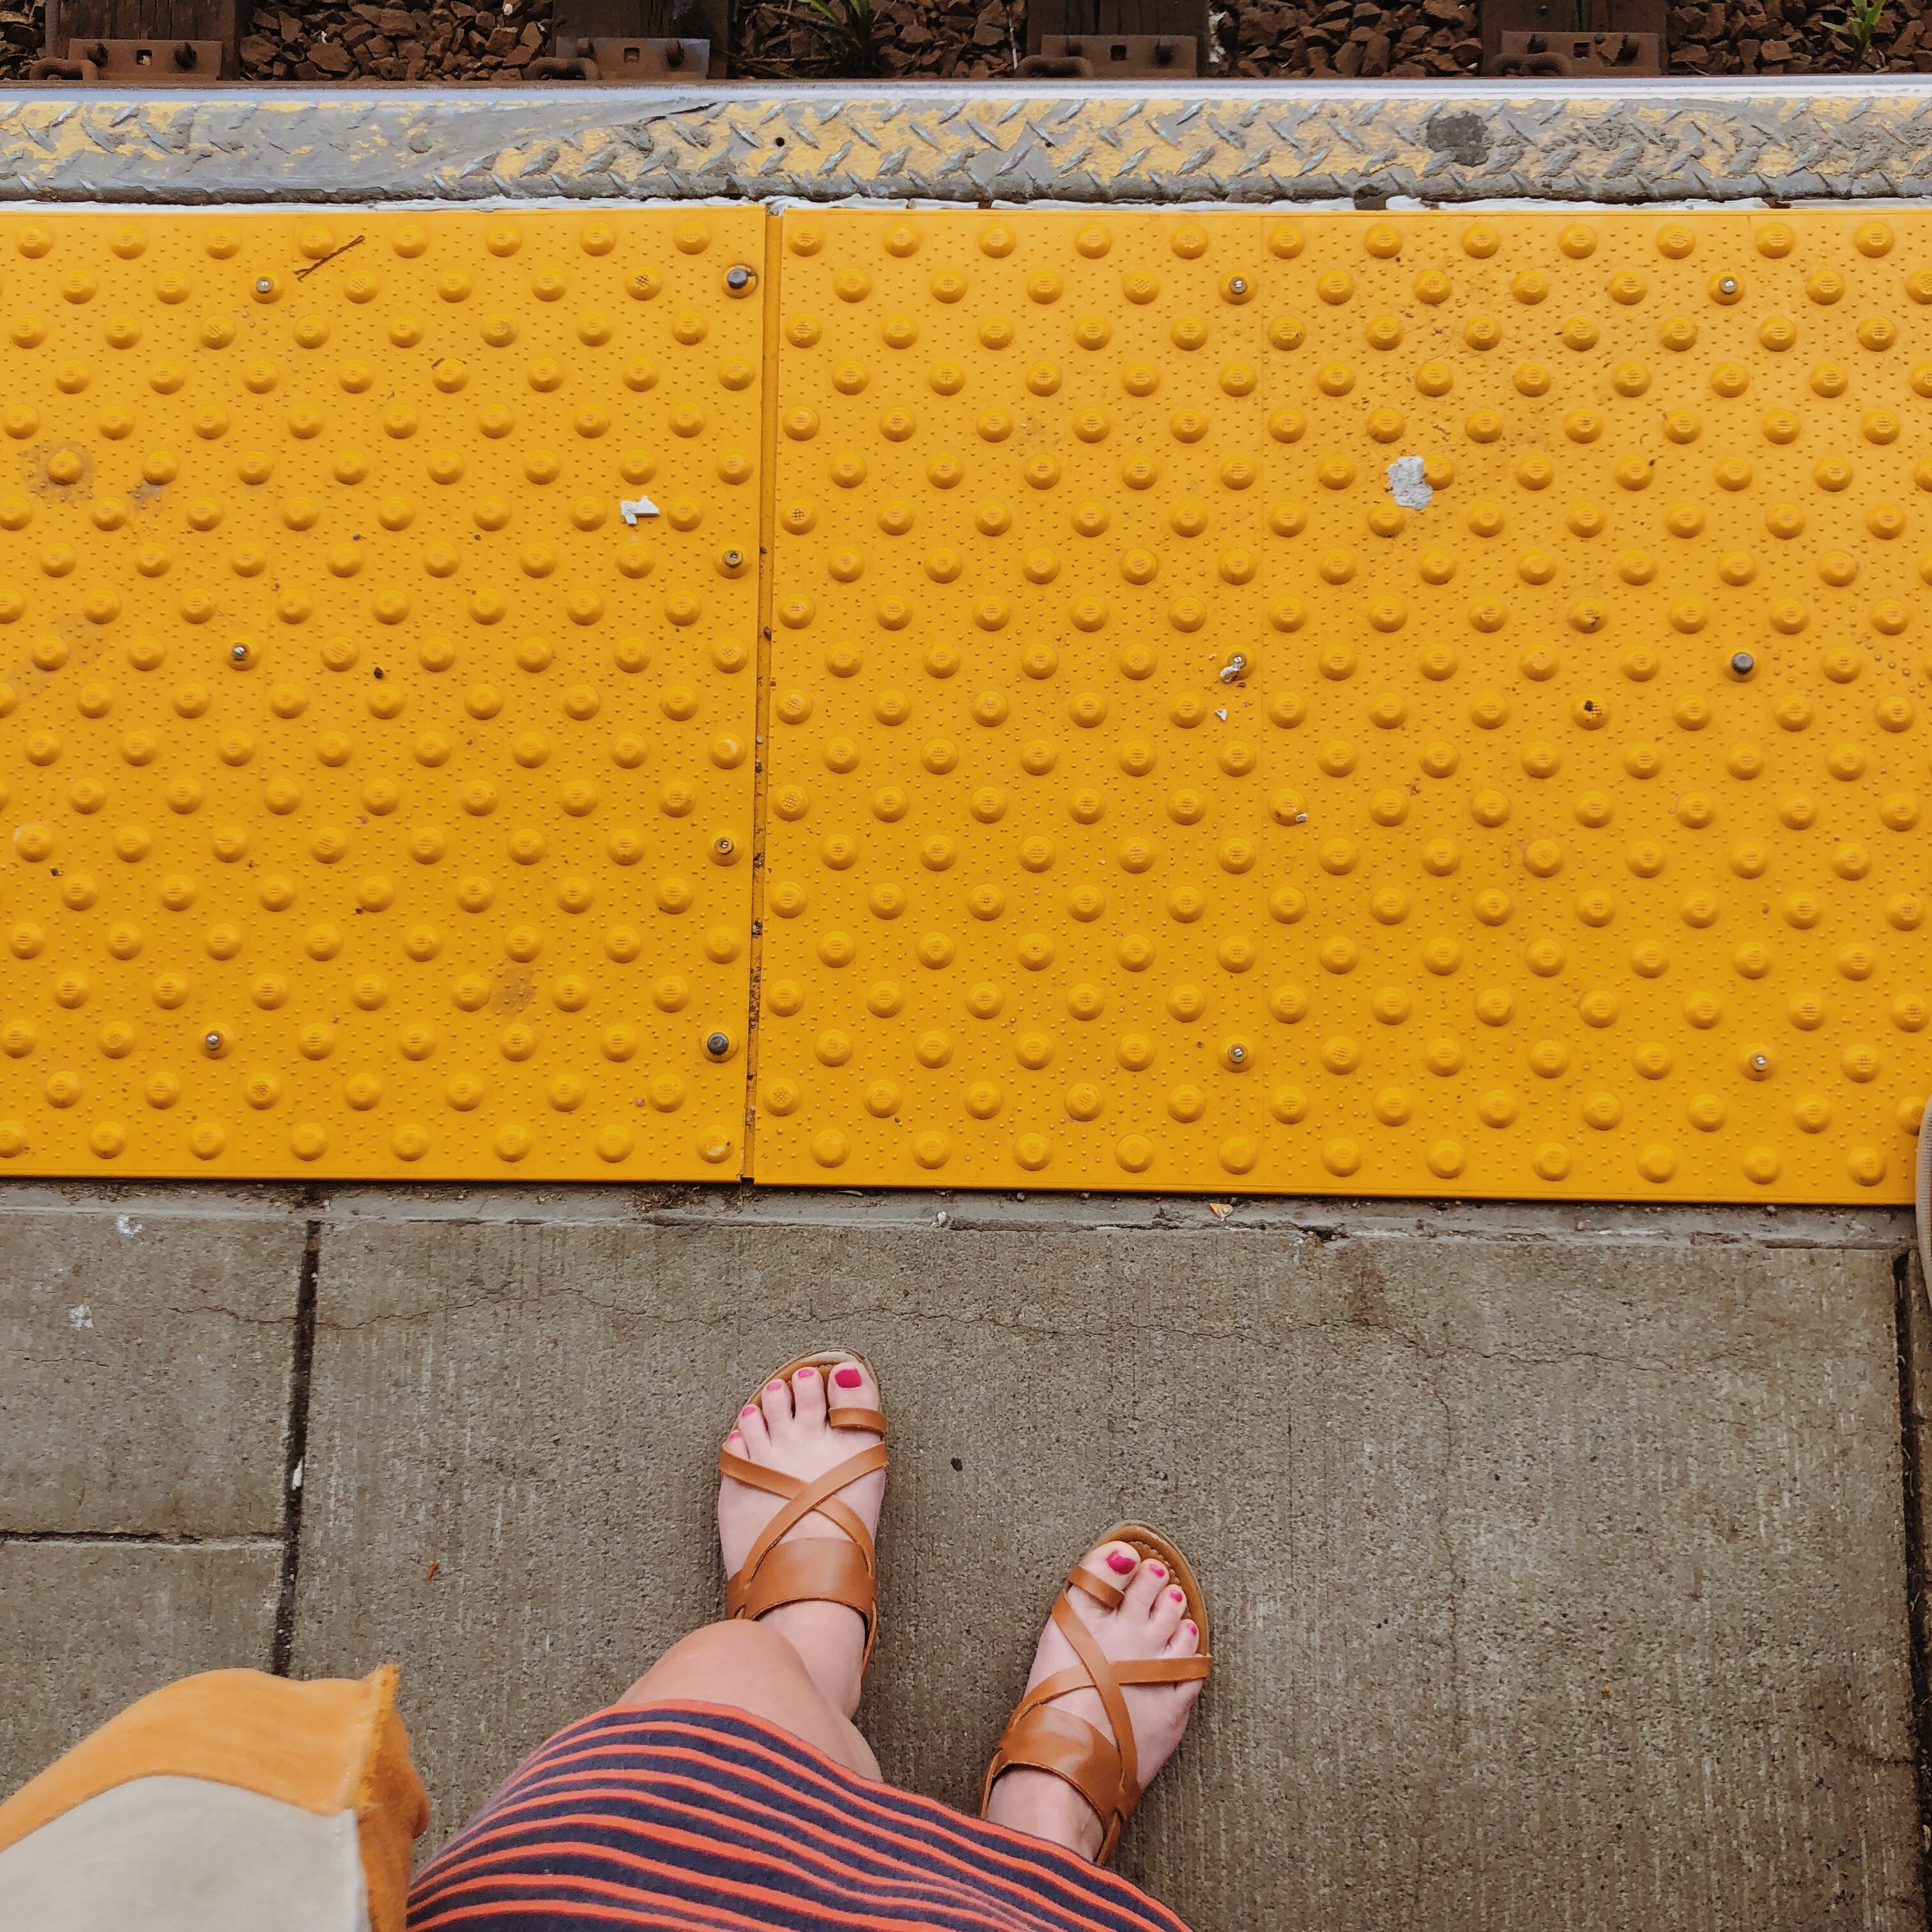 Waiting for T - MBTA | Samantha Marie Blog